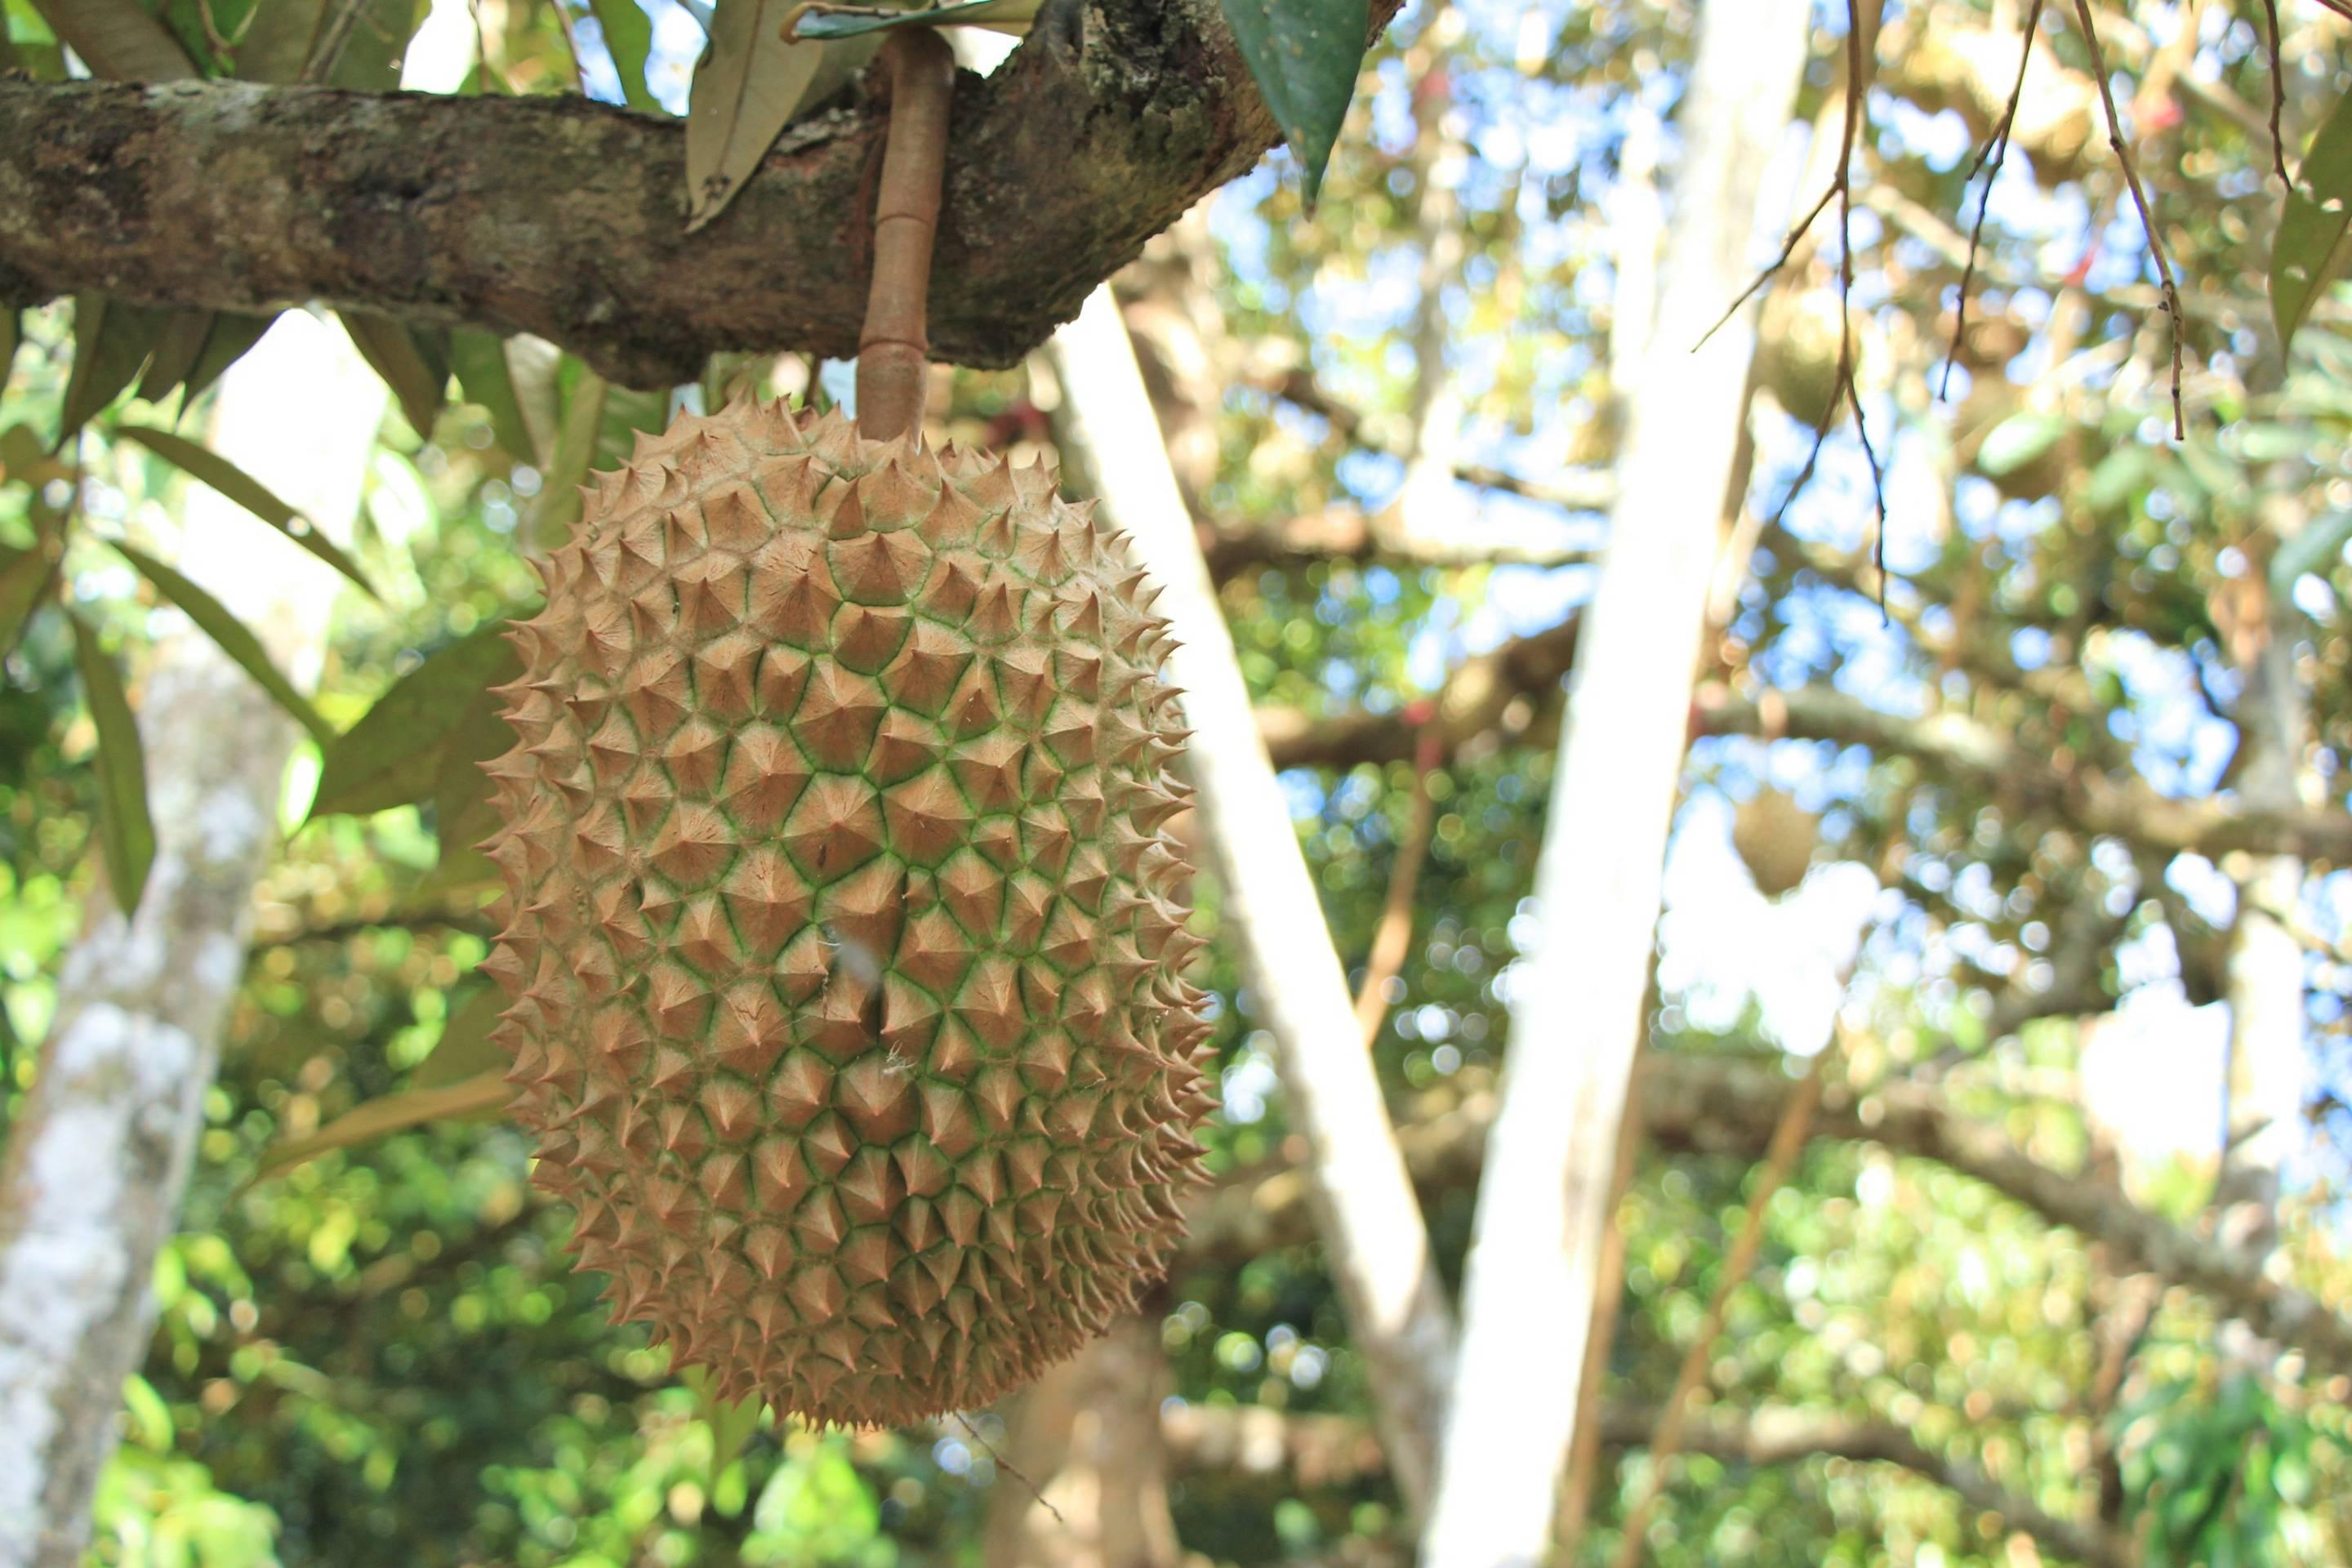 Smelly Durian King of Thai Fruit